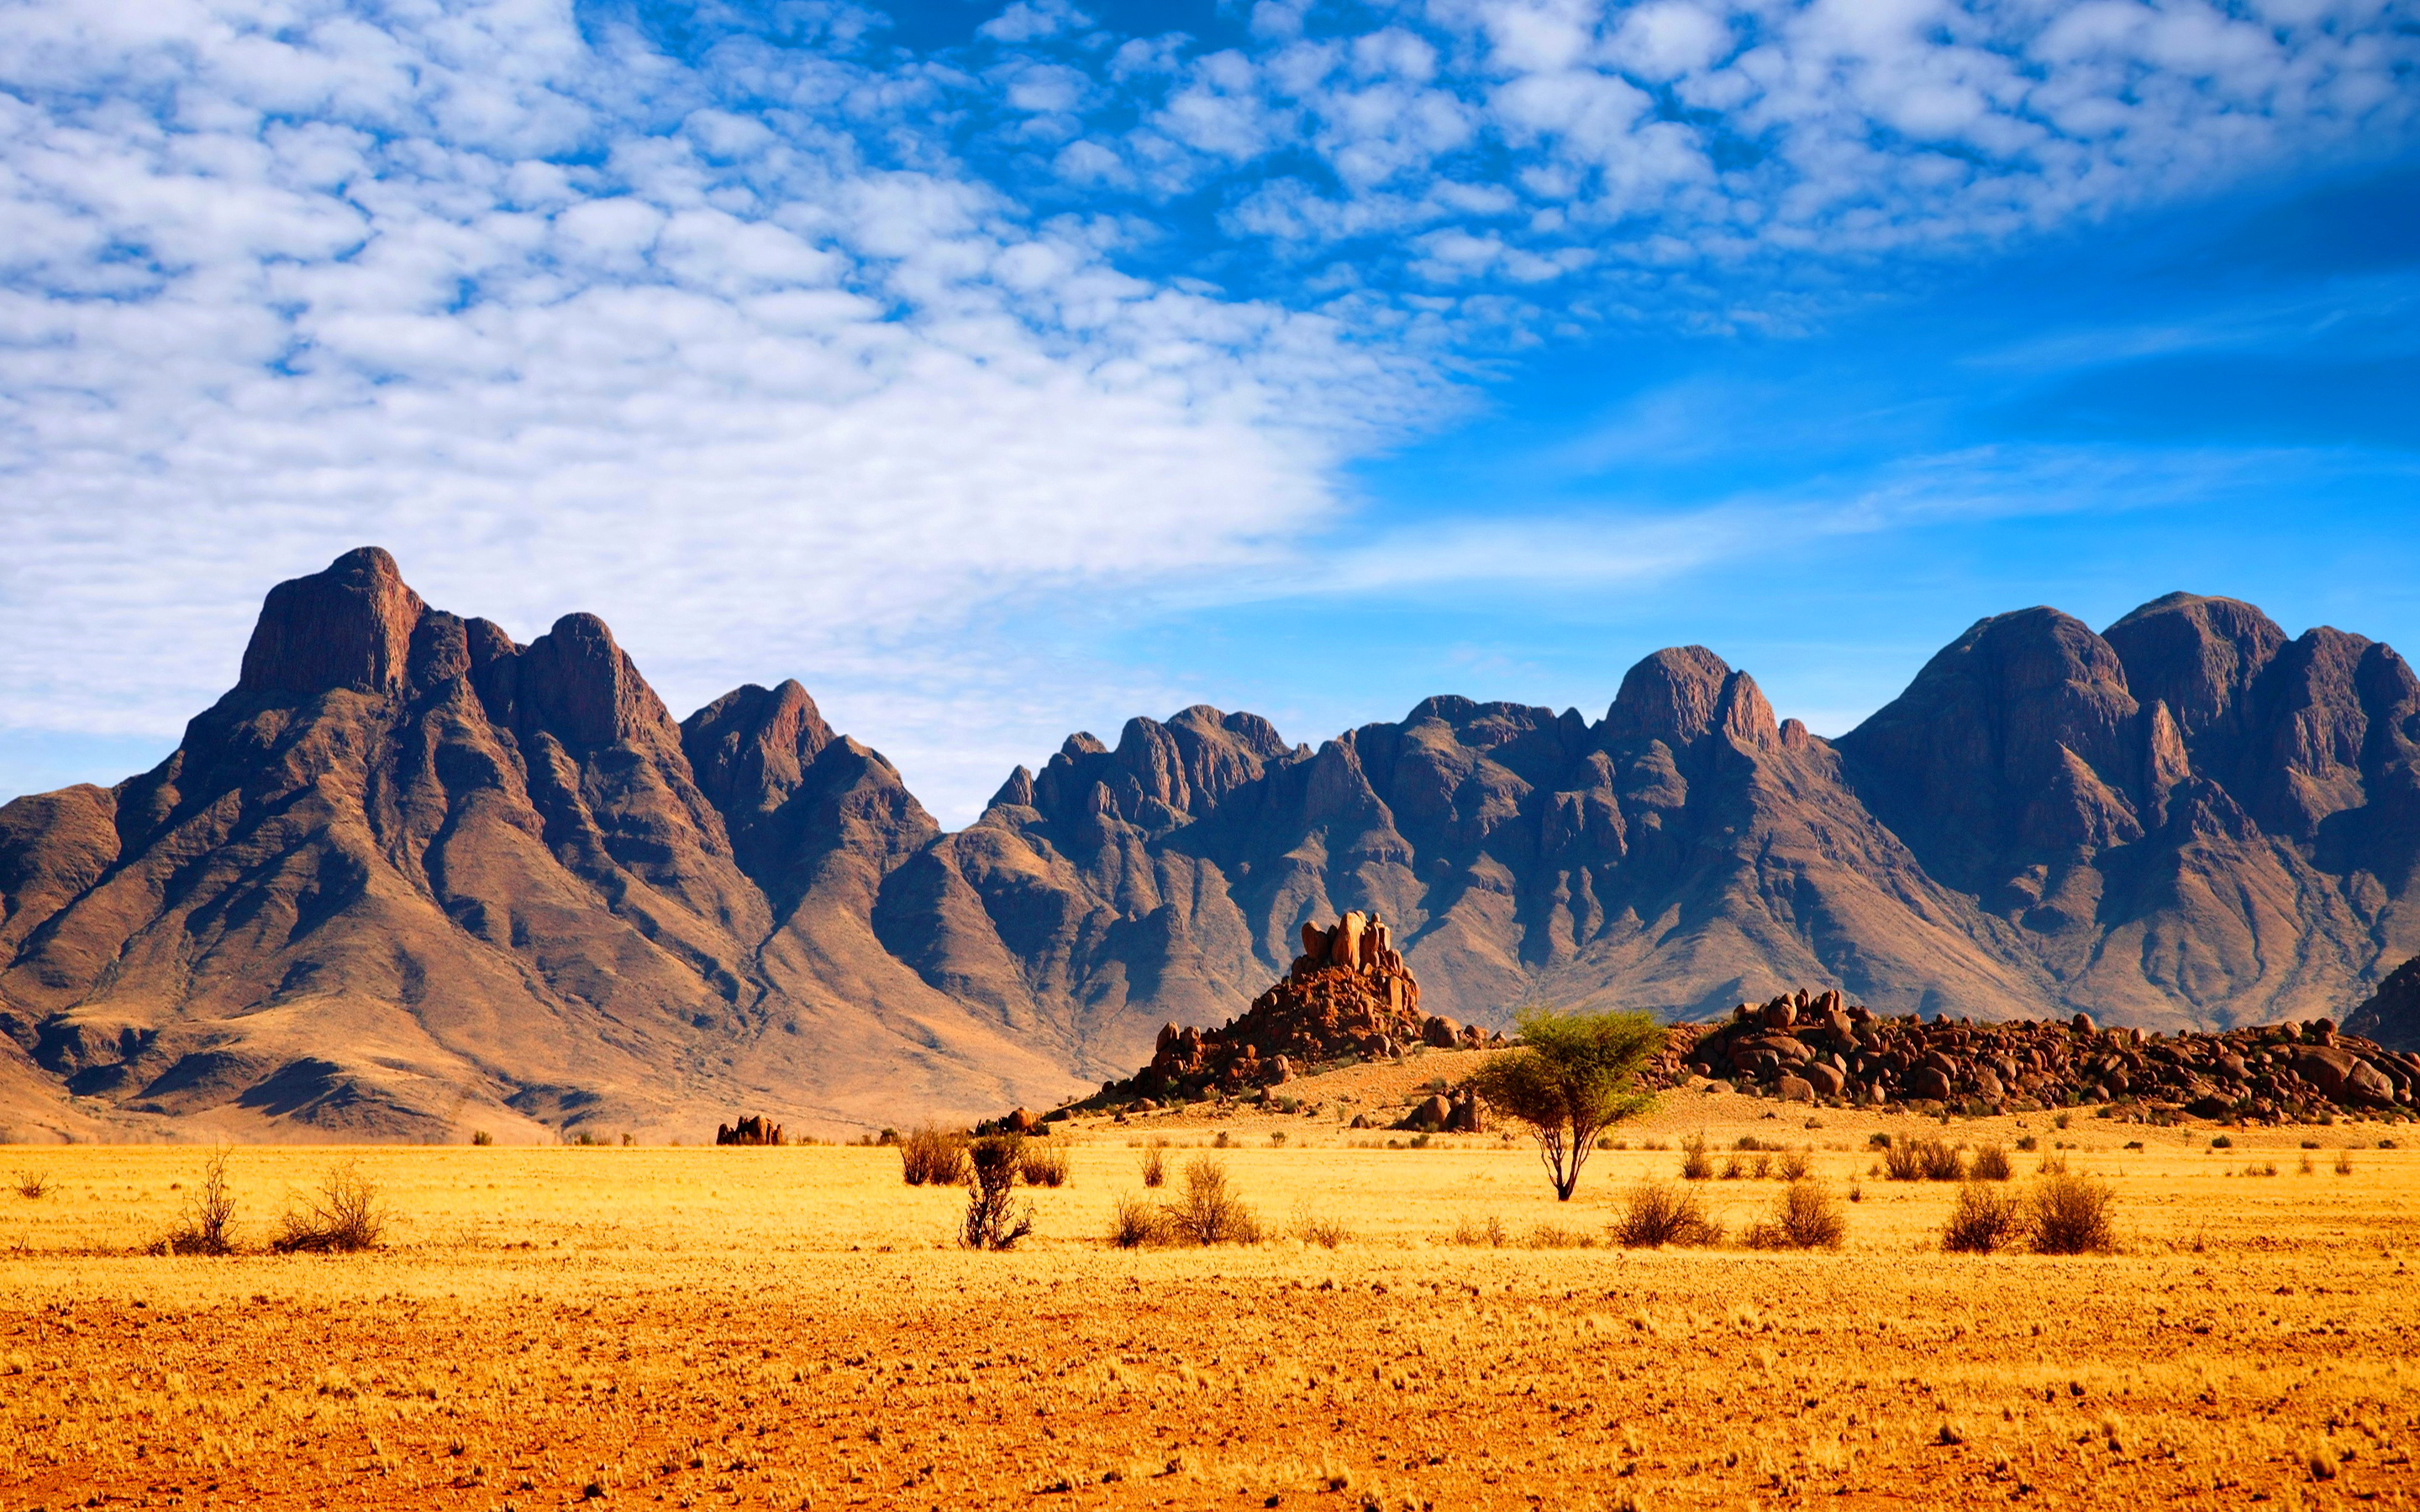 Savanna mountains